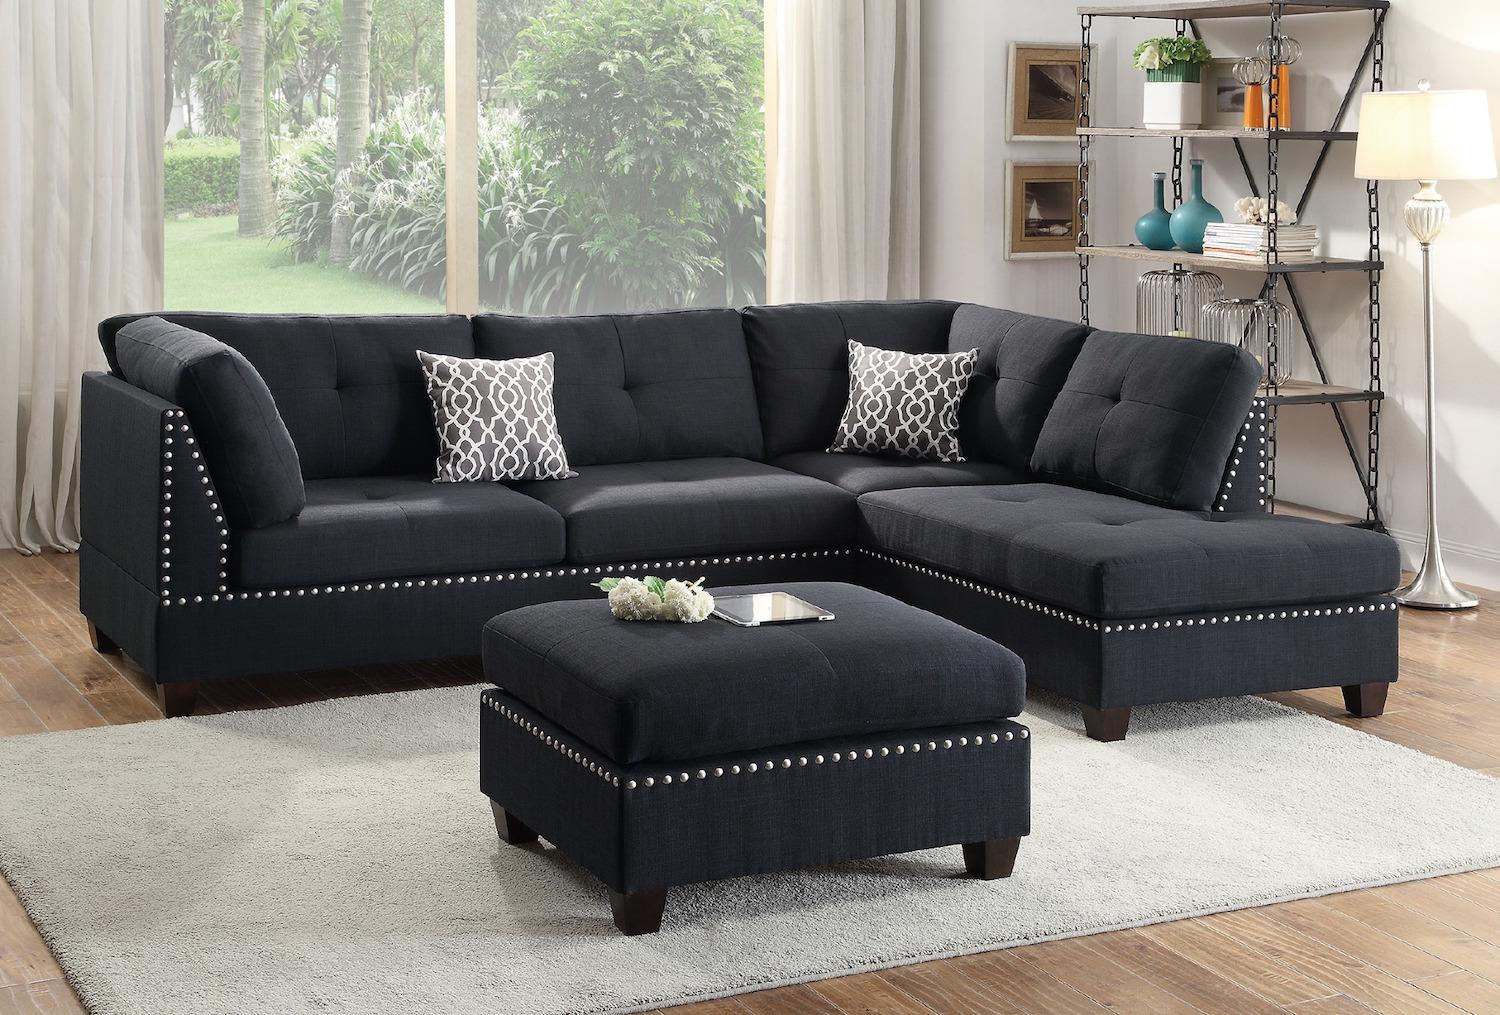 Reversible Sectional Sofa with Ottoman Set